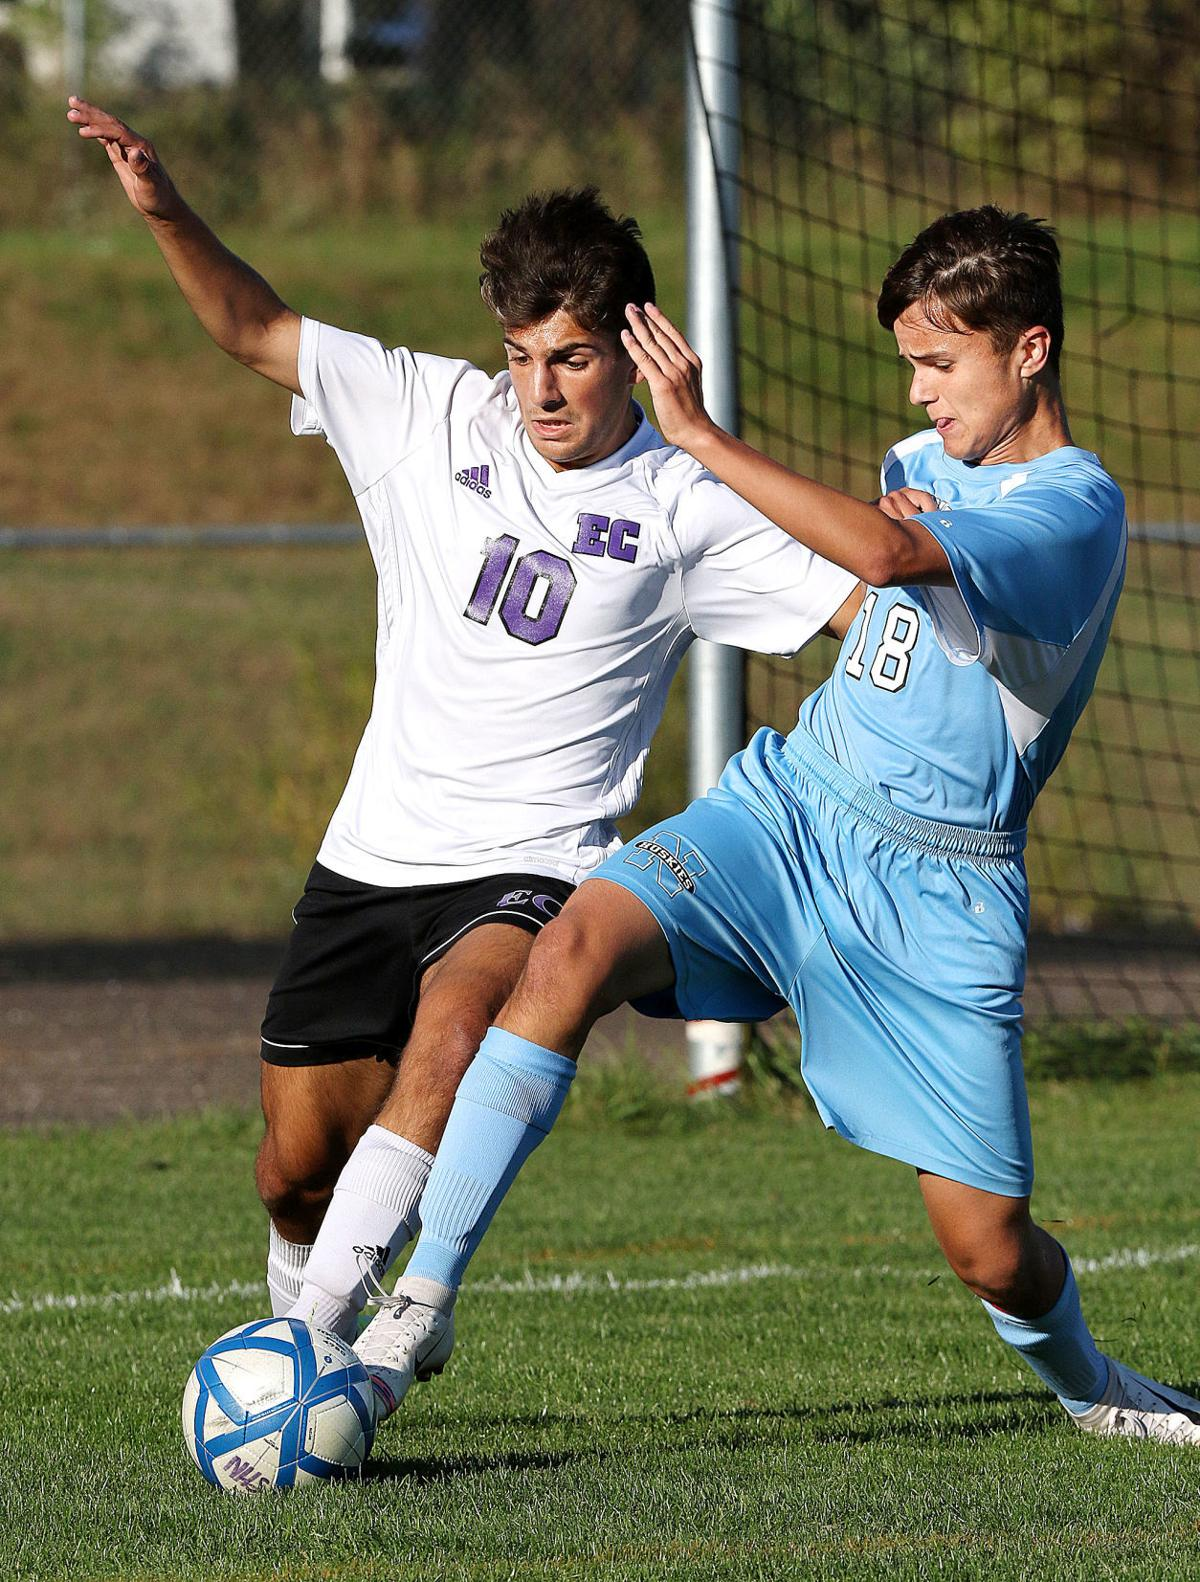 100919_sk_north_abes_soccer_06a